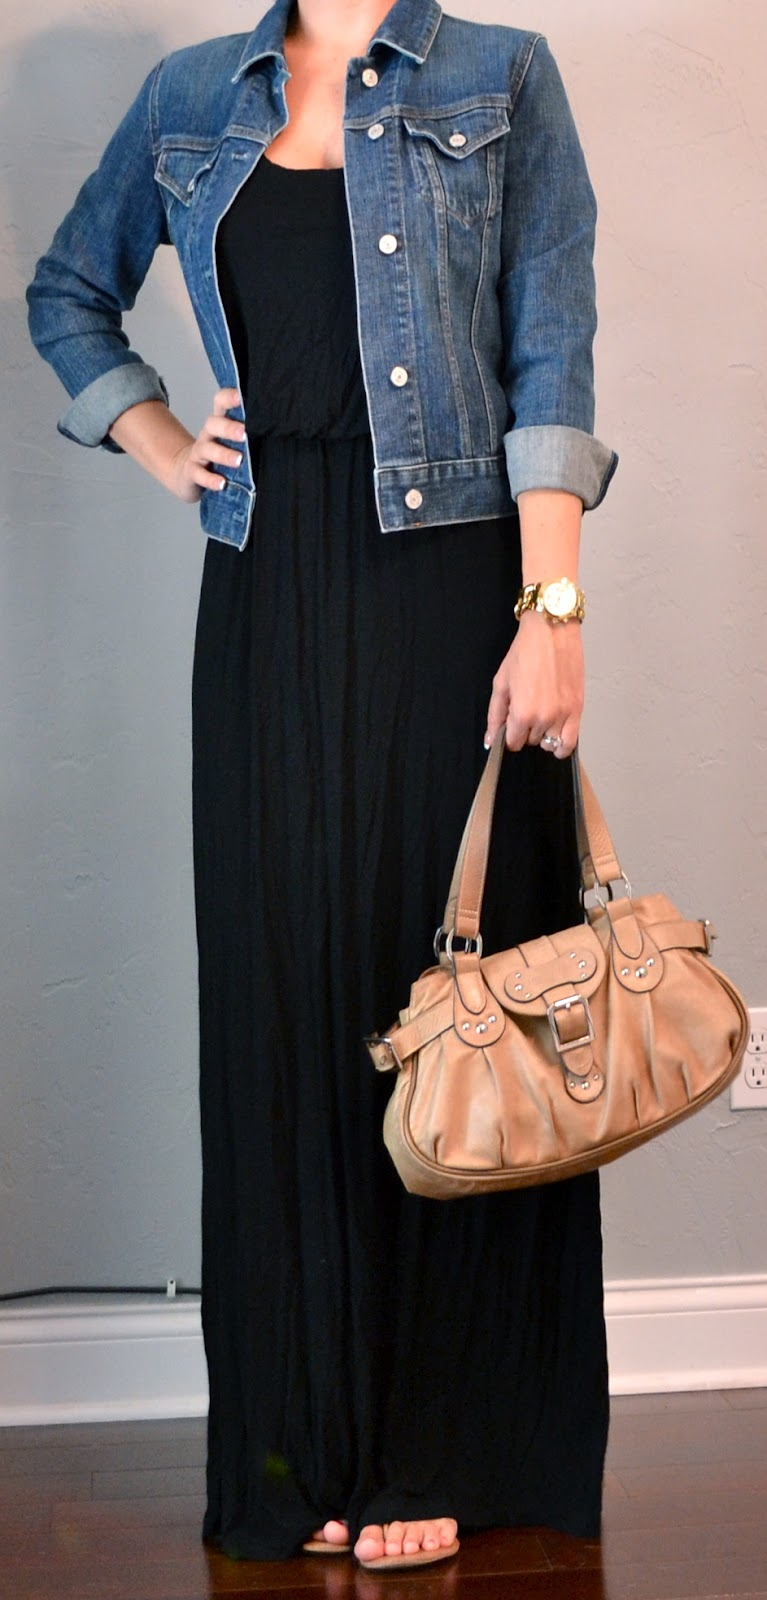 outfit post black maxi dress jean jacket outfit posts